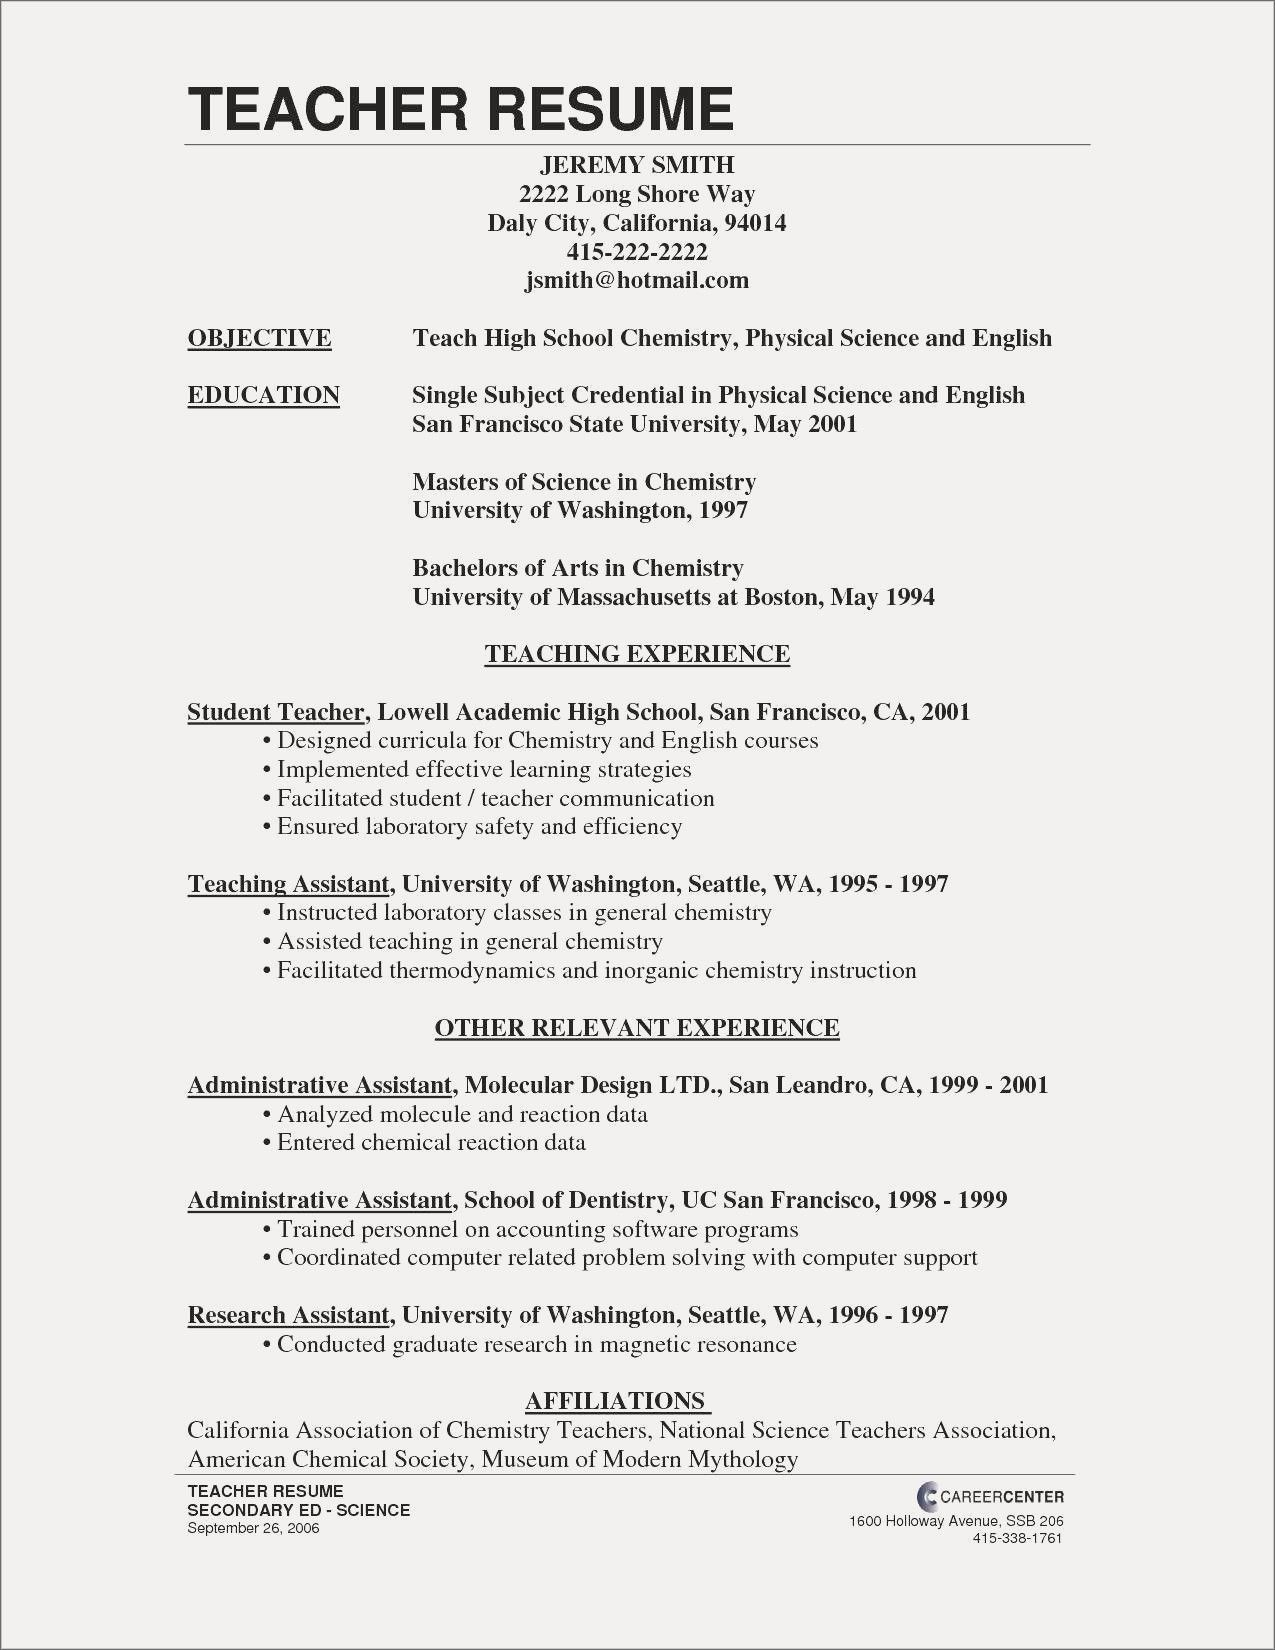 77 Luxury Images Of Resume Examples for Beginning Teachers